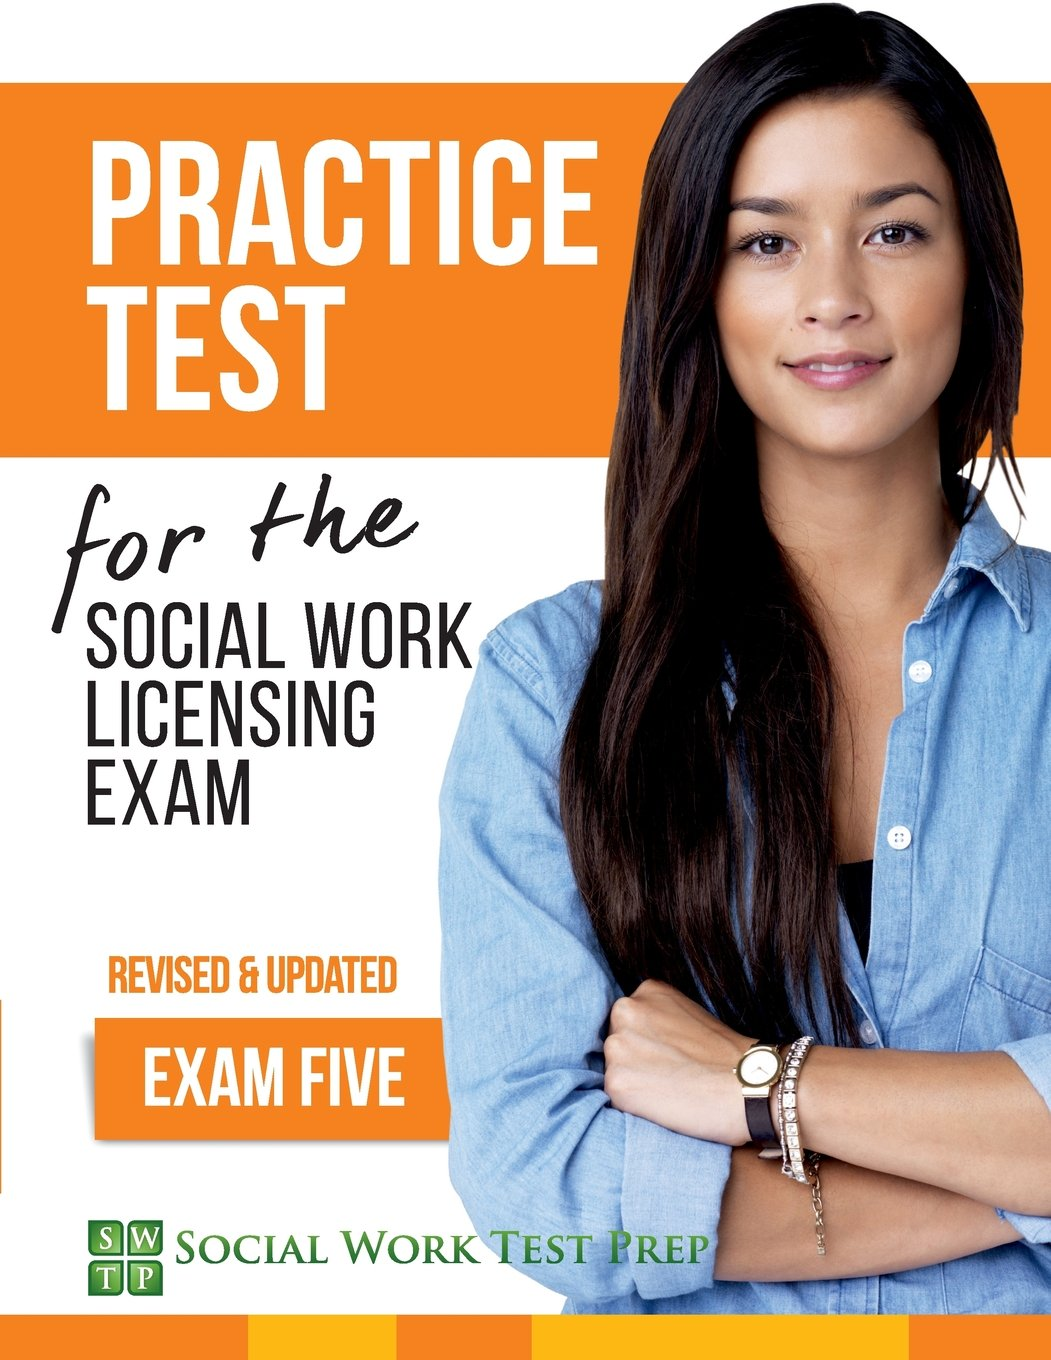 Practice Test for the Social Work Licensing Exam: Exam Five (Revised & Updated) (SWTP Practice Tests) (Volume 5) pdf epub